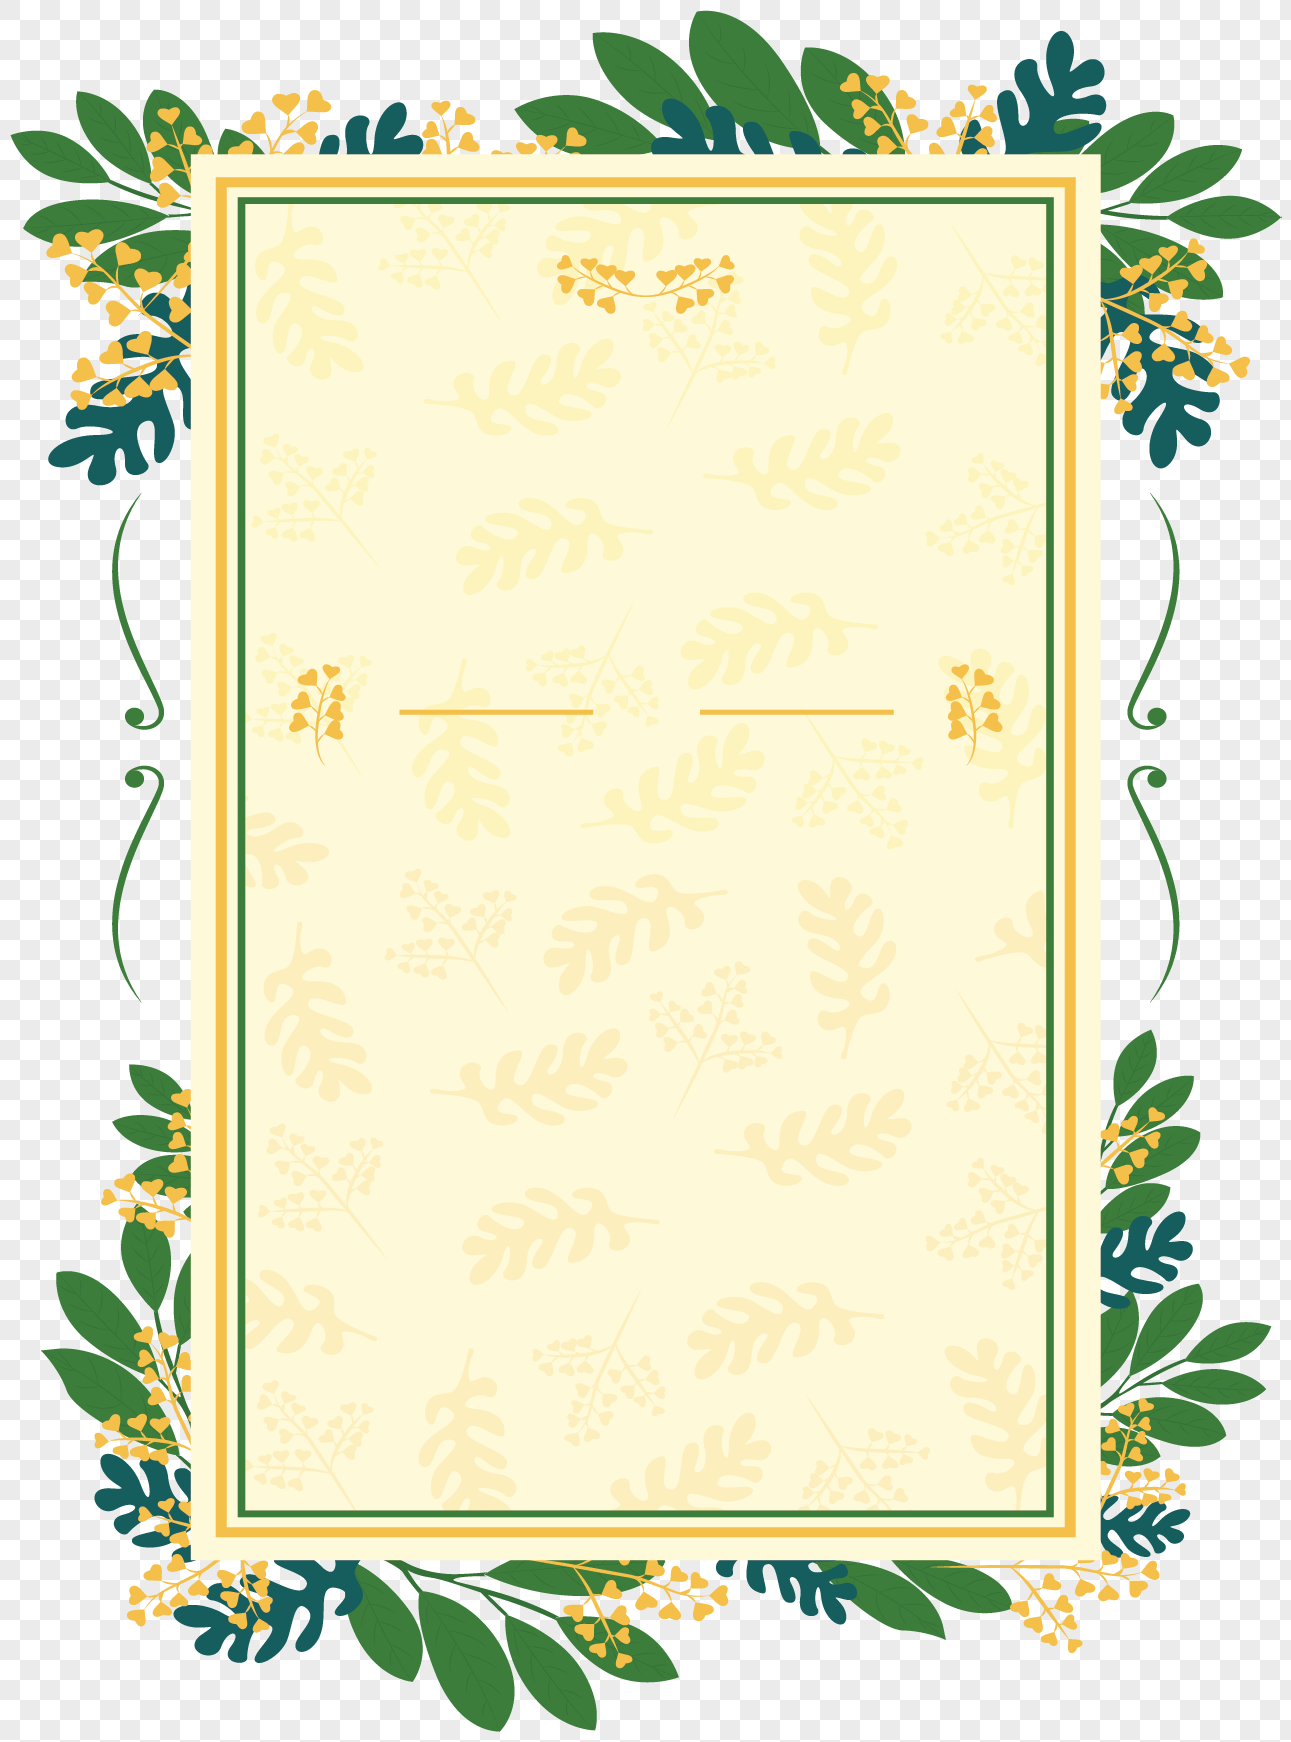 Green Leaf Wedding Invitation Card Png Image Picture Free Download